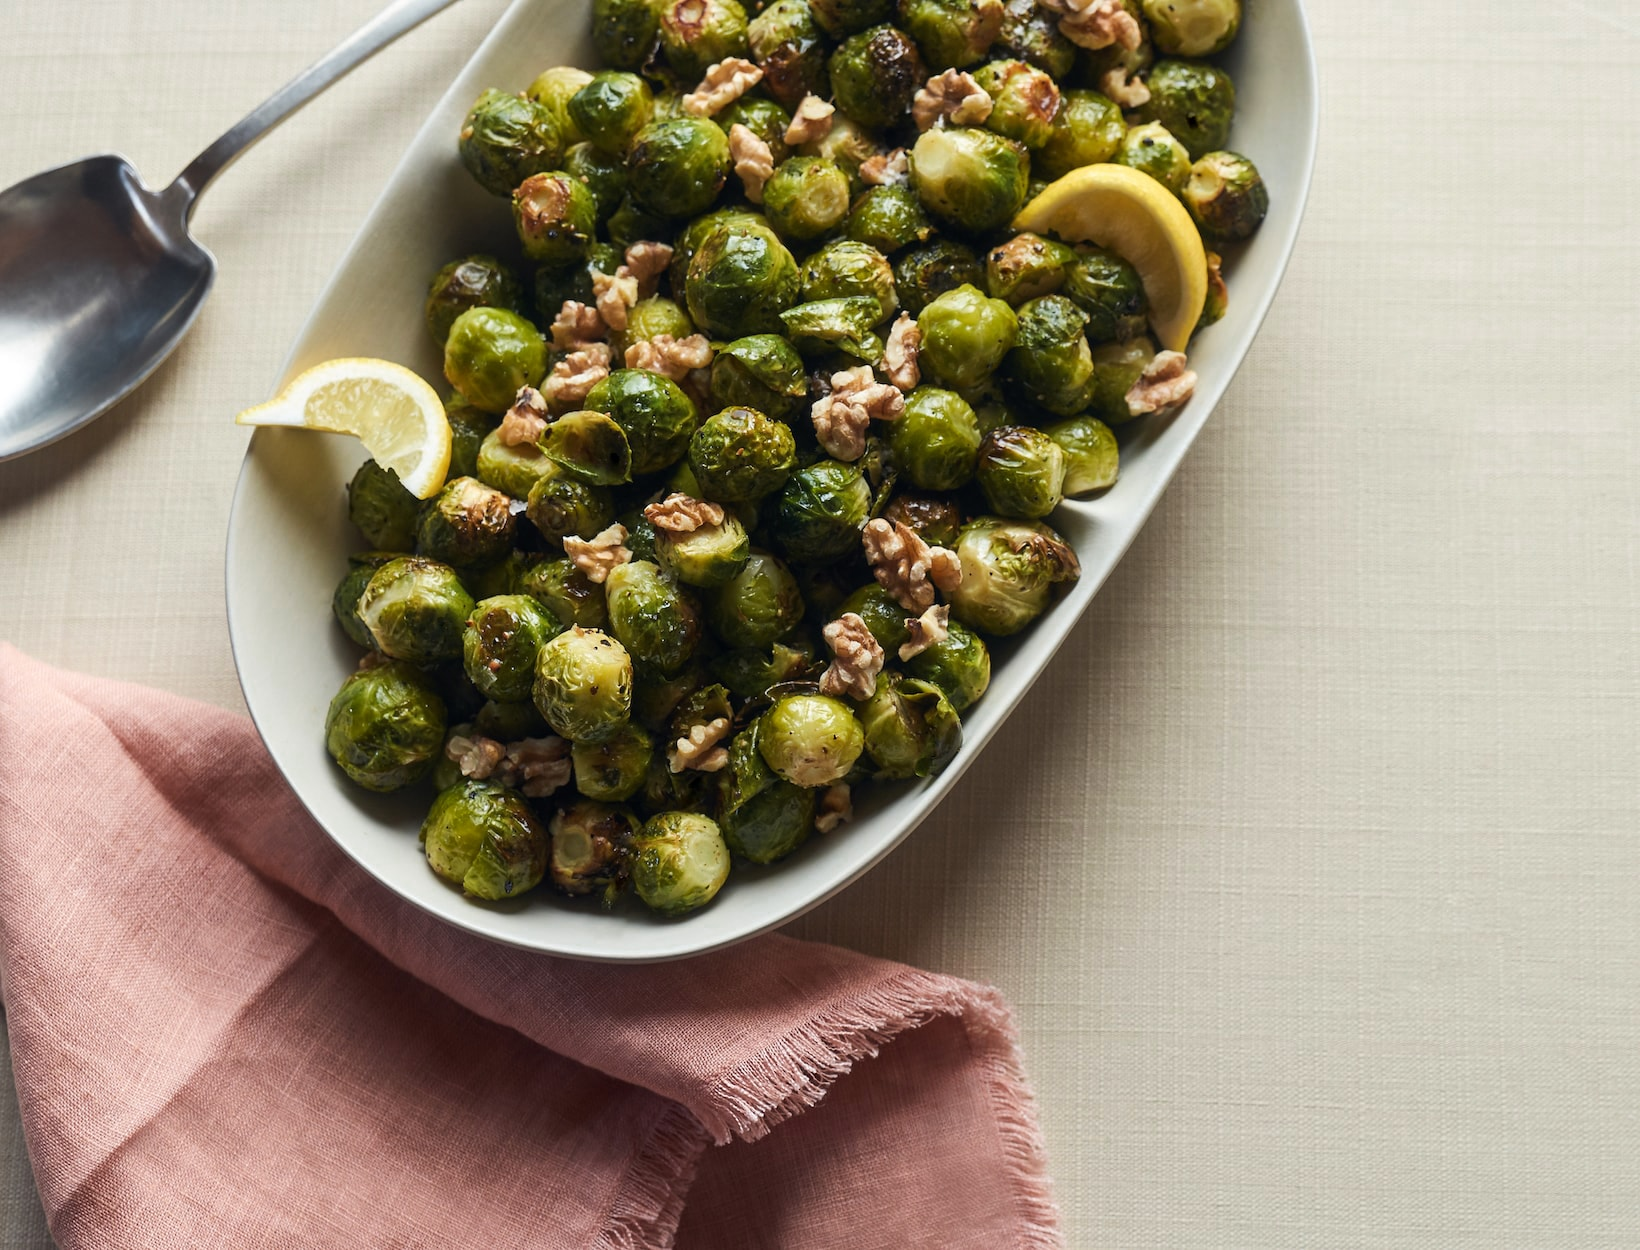 Roasted Brussels Sprouts with Walnuts and Lemon